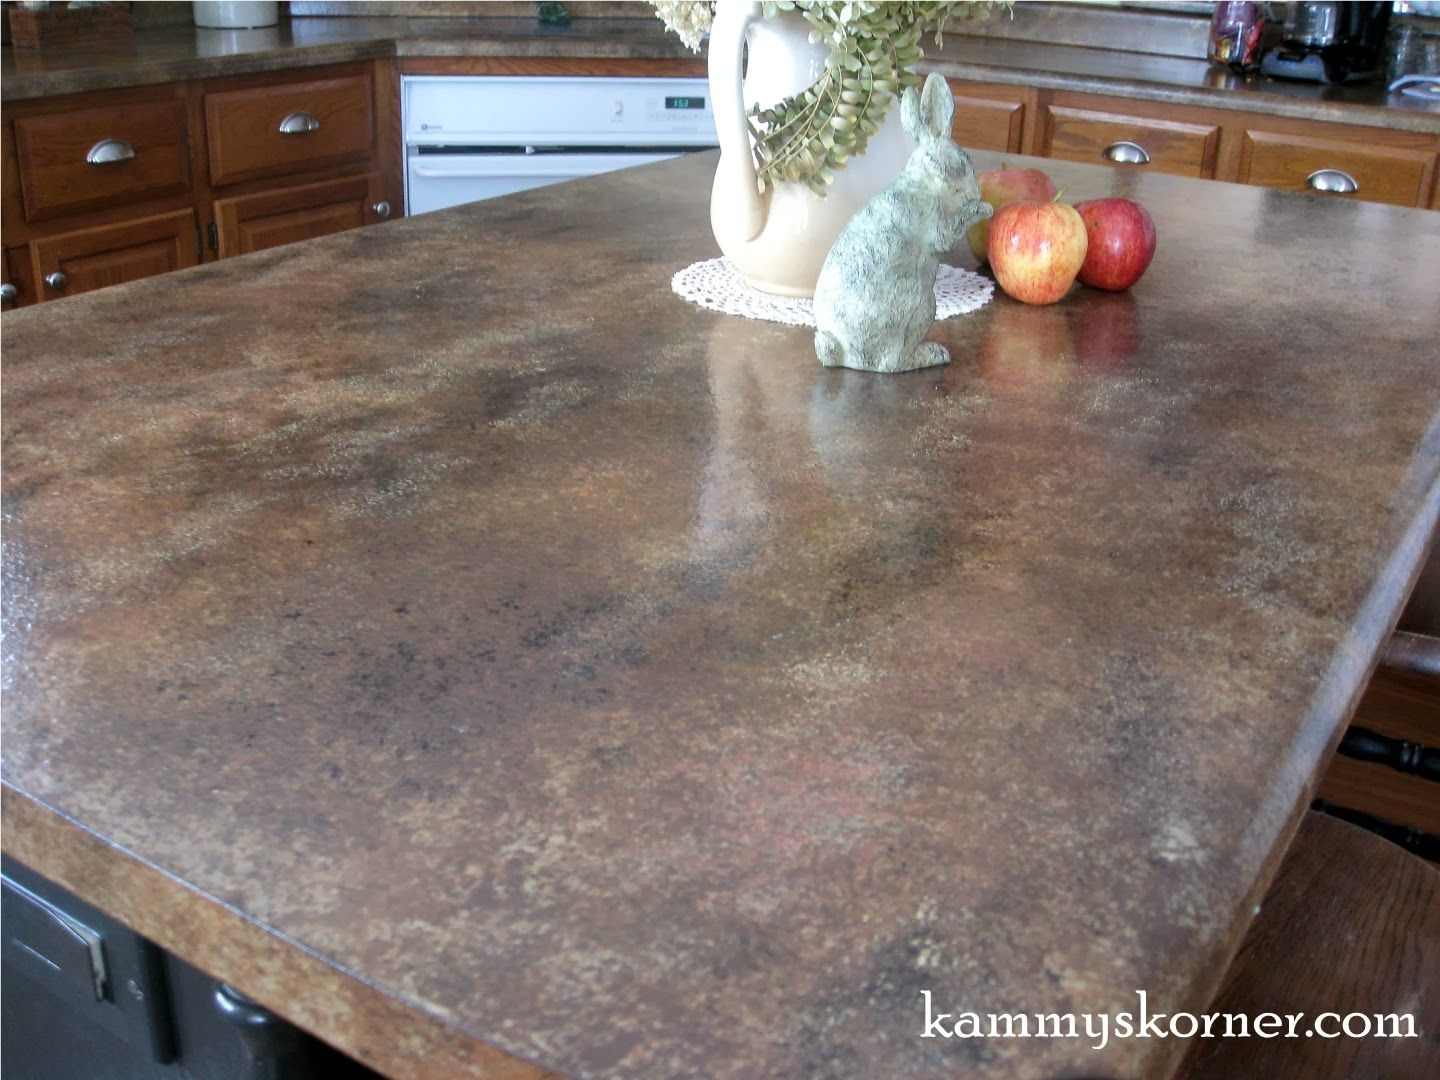 Painted Faux Granite Counter Tops With DIY Chalk Paint